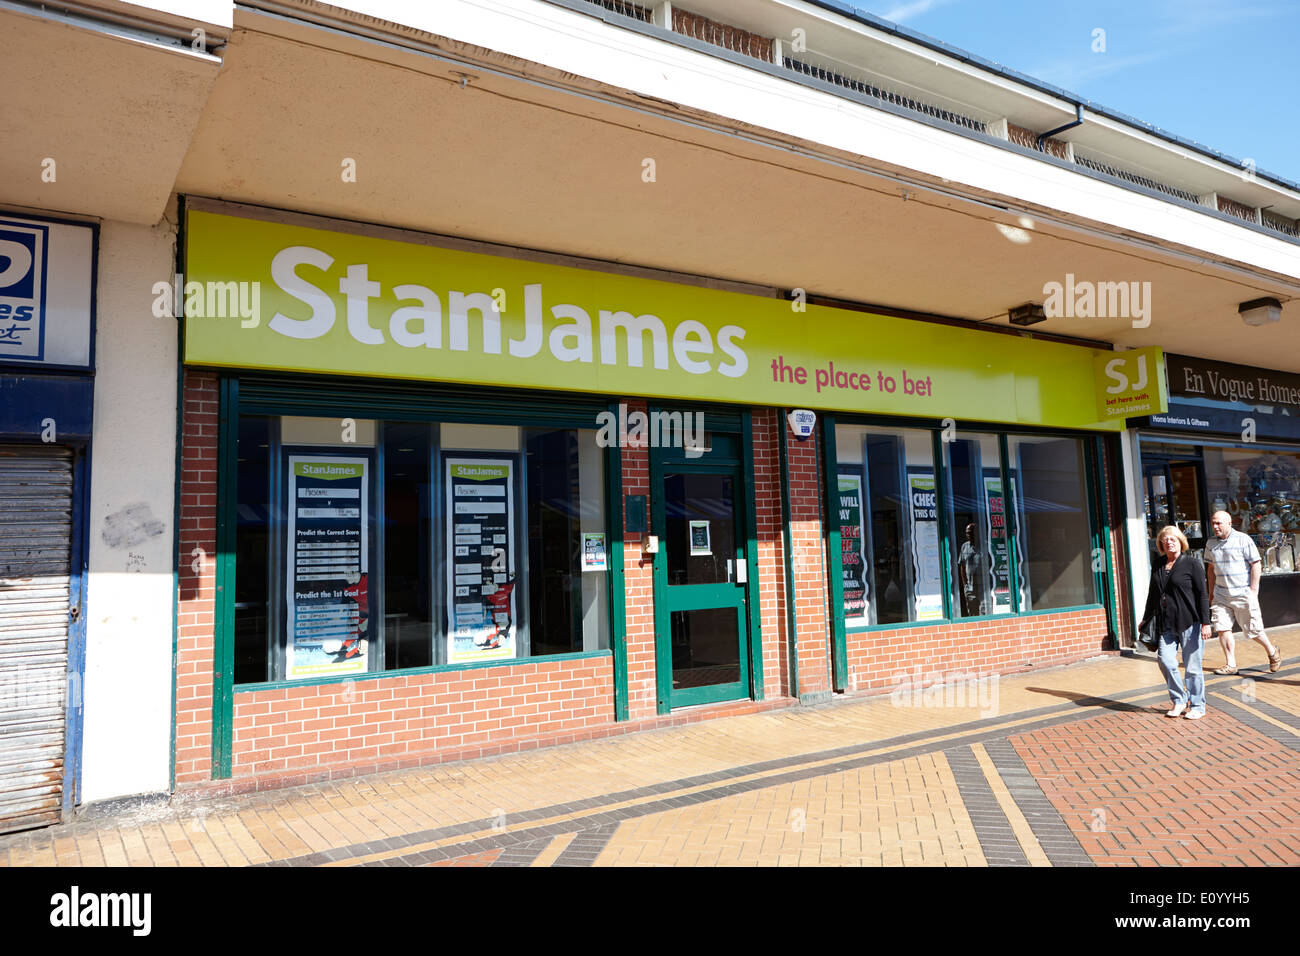 stan james bookmakers office Kirkby town centre Merseyside UK - Stock Image